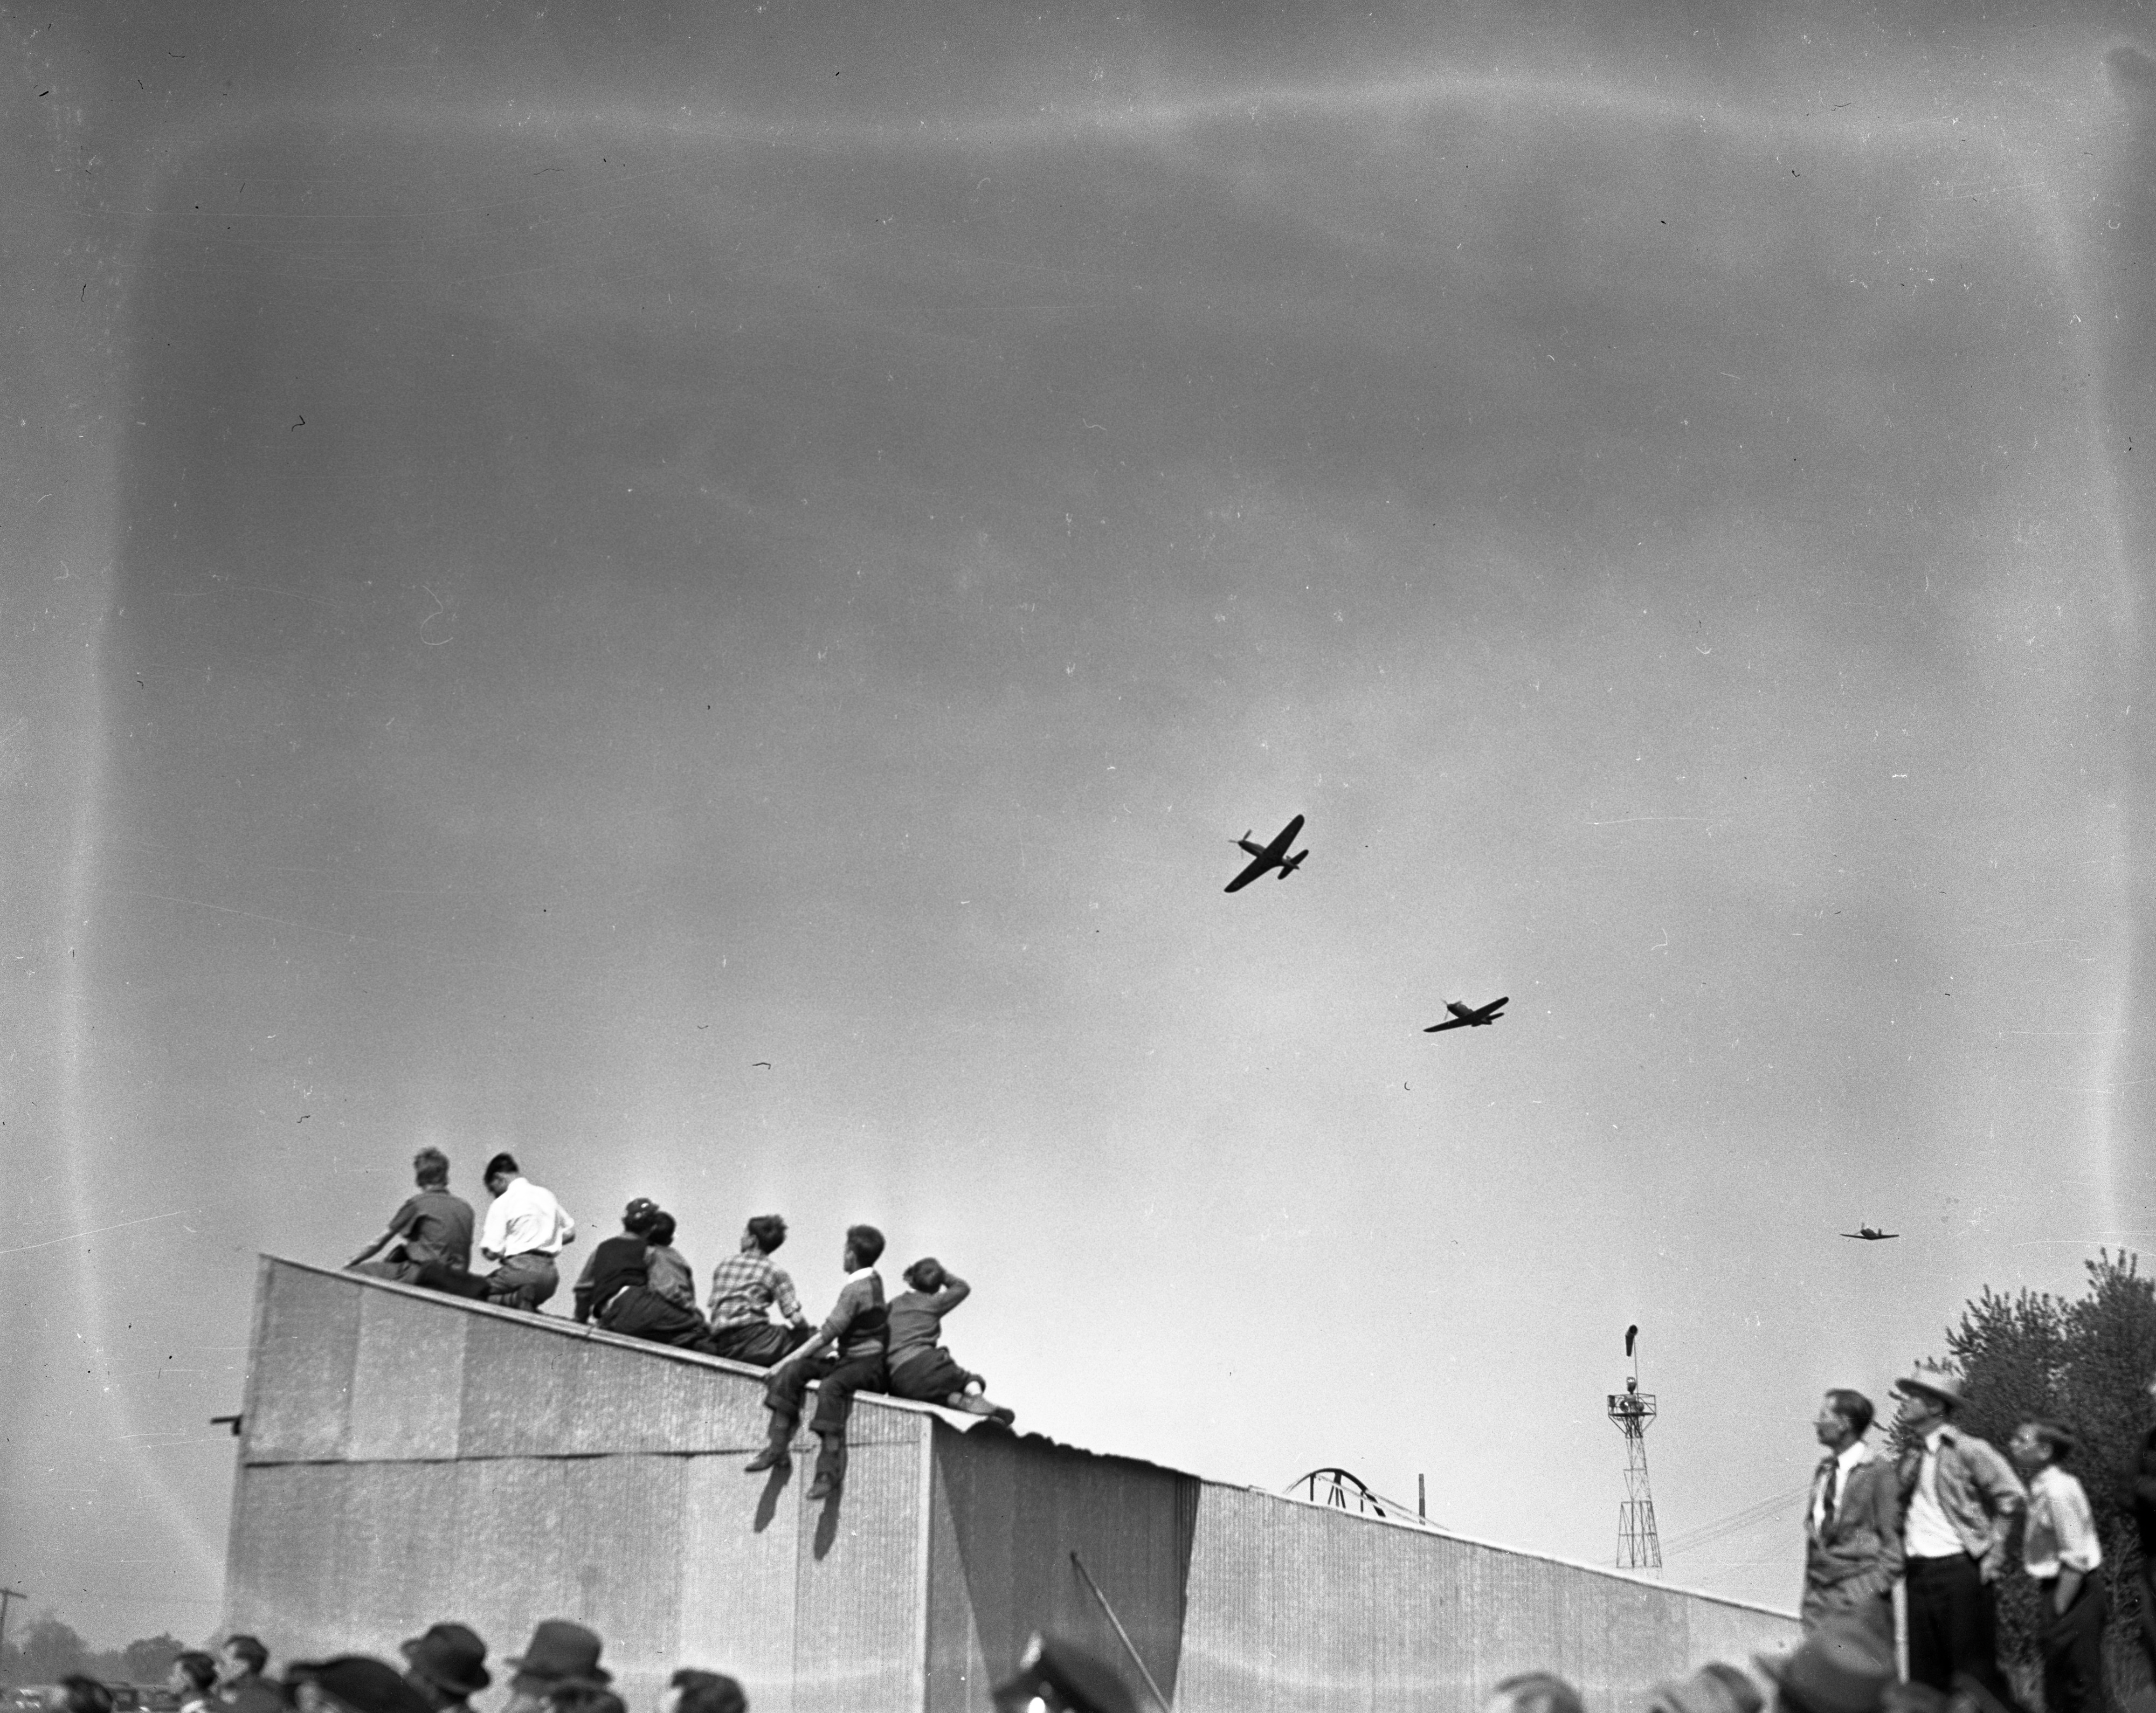 Crowd watching Army Planes (Airacobras), Ann Arbor Airport, 1941 image